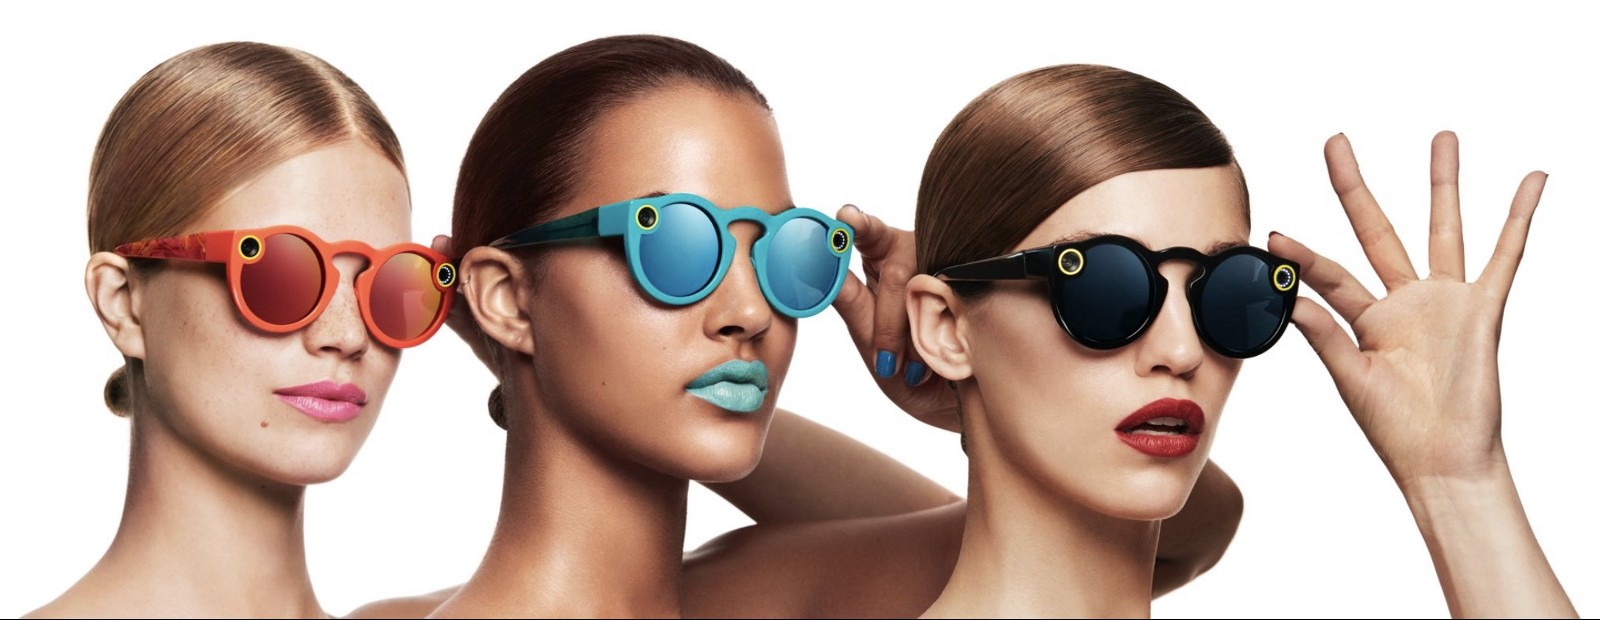 f2e488148e The Unfinished Story of how Snap(chat) Spectacles  is Executing the Best  Marketing Campaign in History